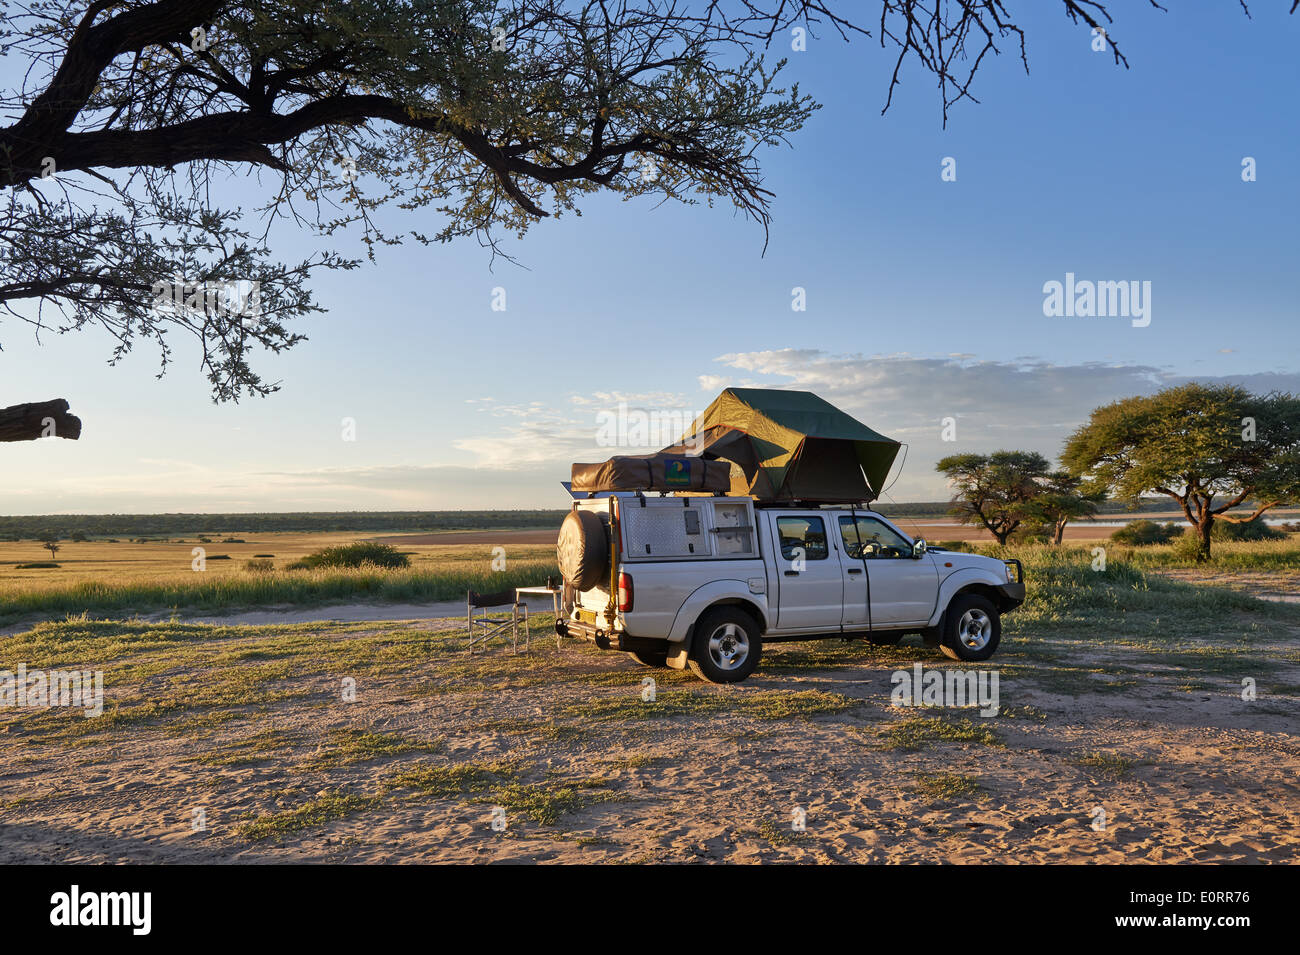 4x4 car with roof tent in landscape of Kgalagadi Transfrontier Park Mabuasehube Section Kalahari & Roof Tent Stock Photos u0026 Roof Tent Stock Images - Alamy